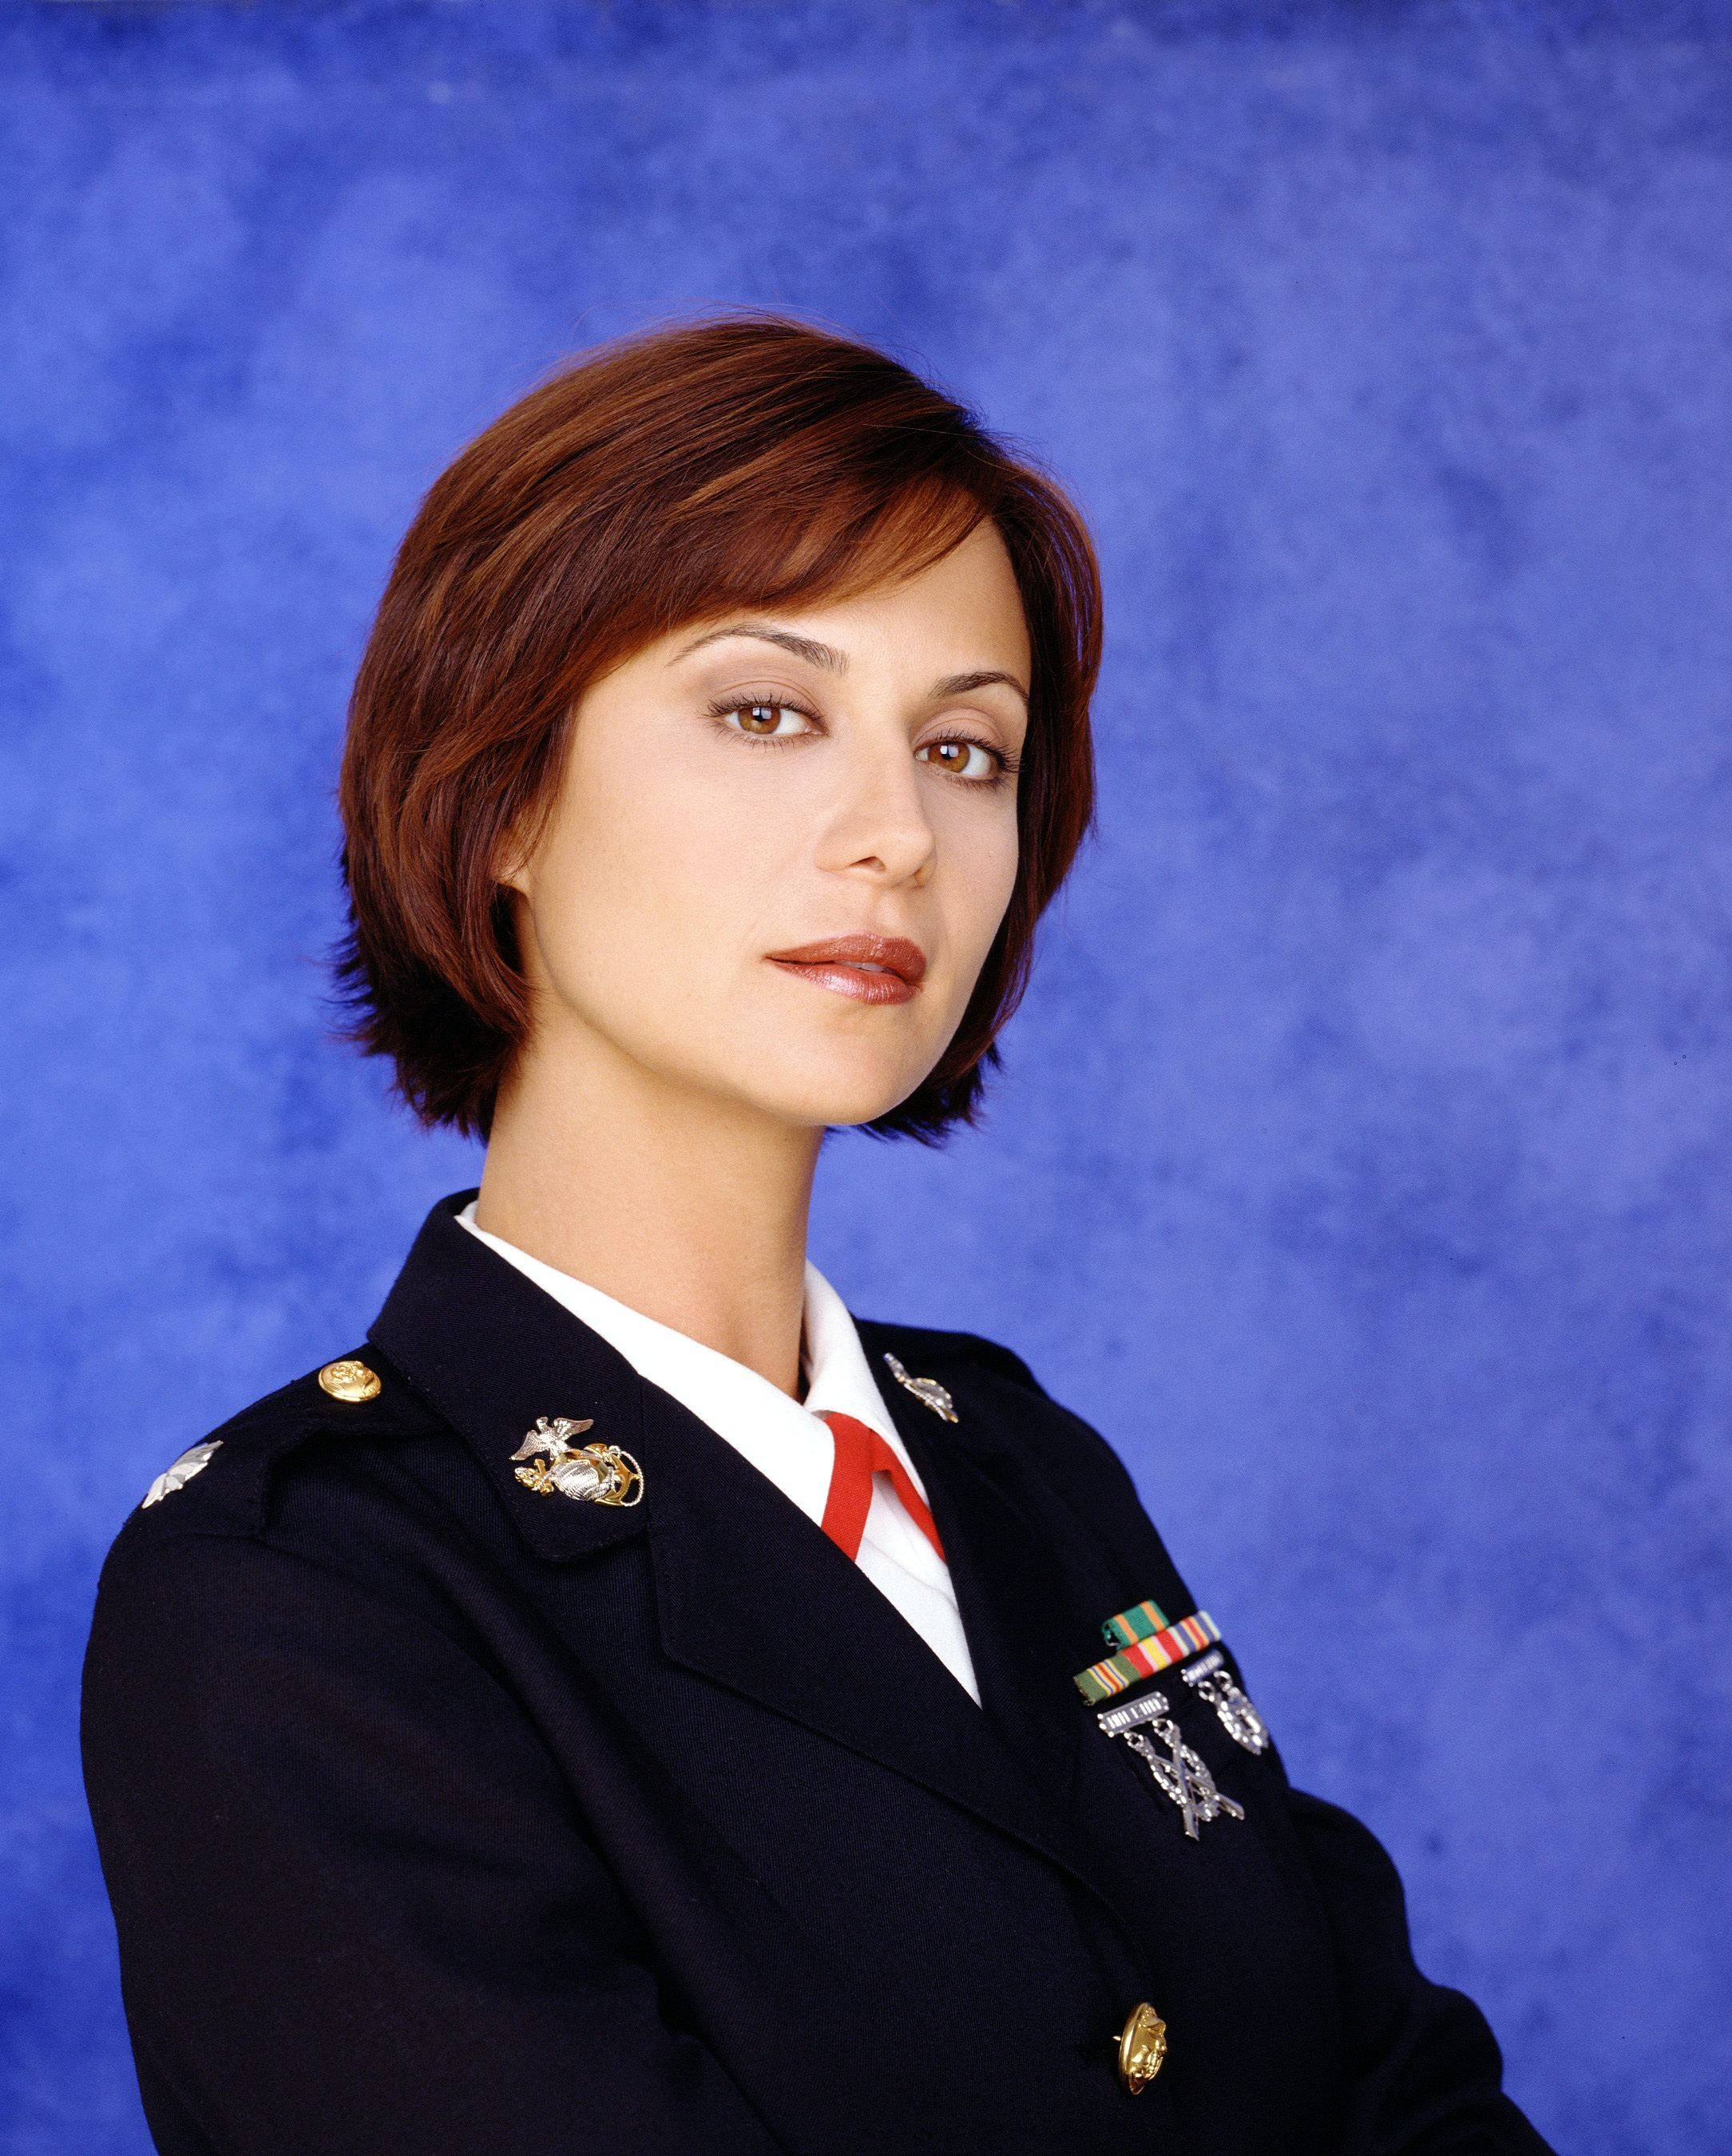 Catherine Bell - JAG | Catherine bell, Actresses, Catherine